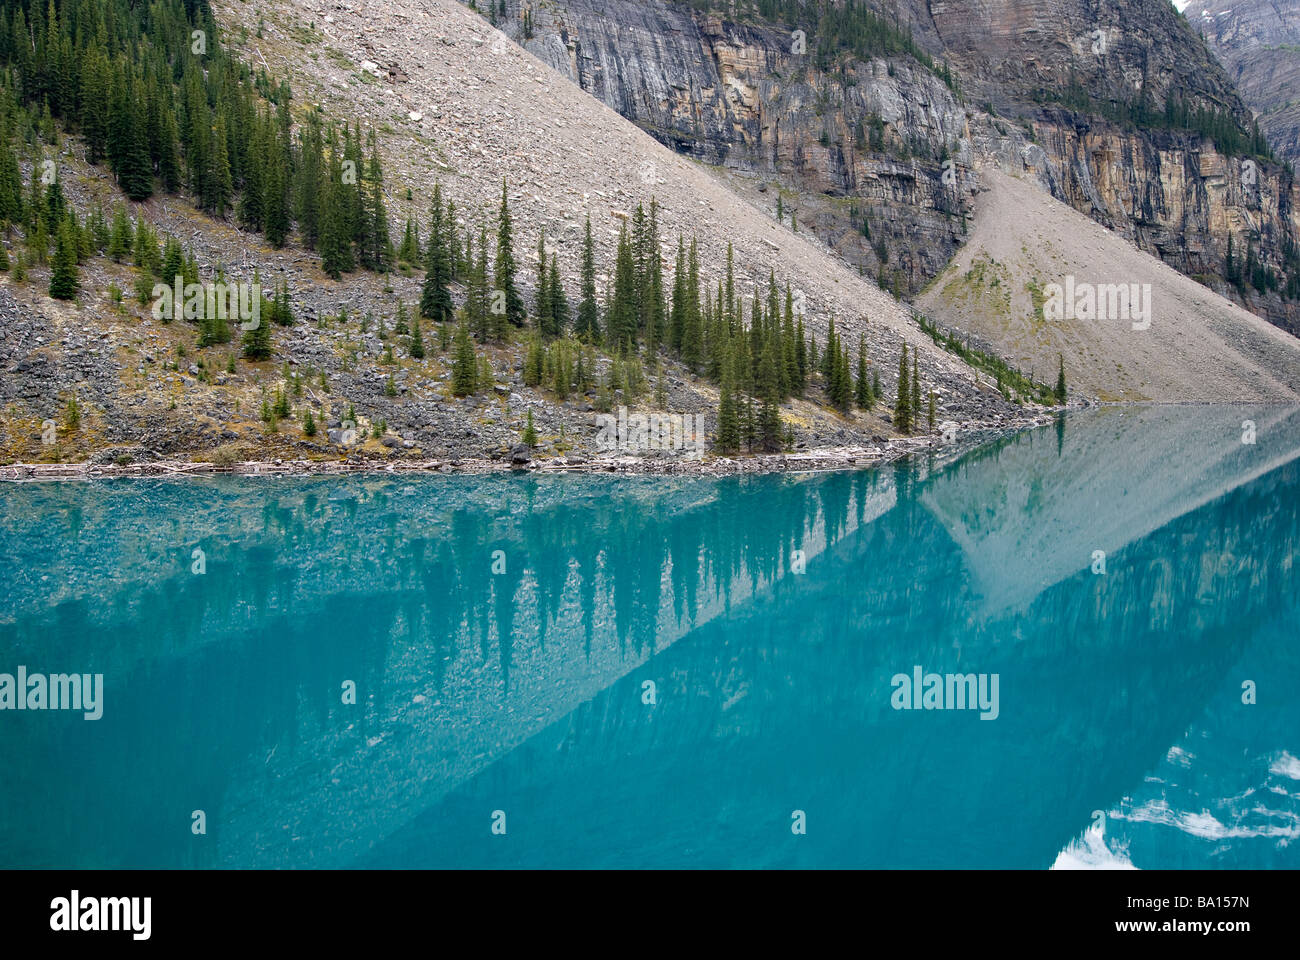 Le lac Moraine, Banff National Park, Alberta, Canada Photo Stock